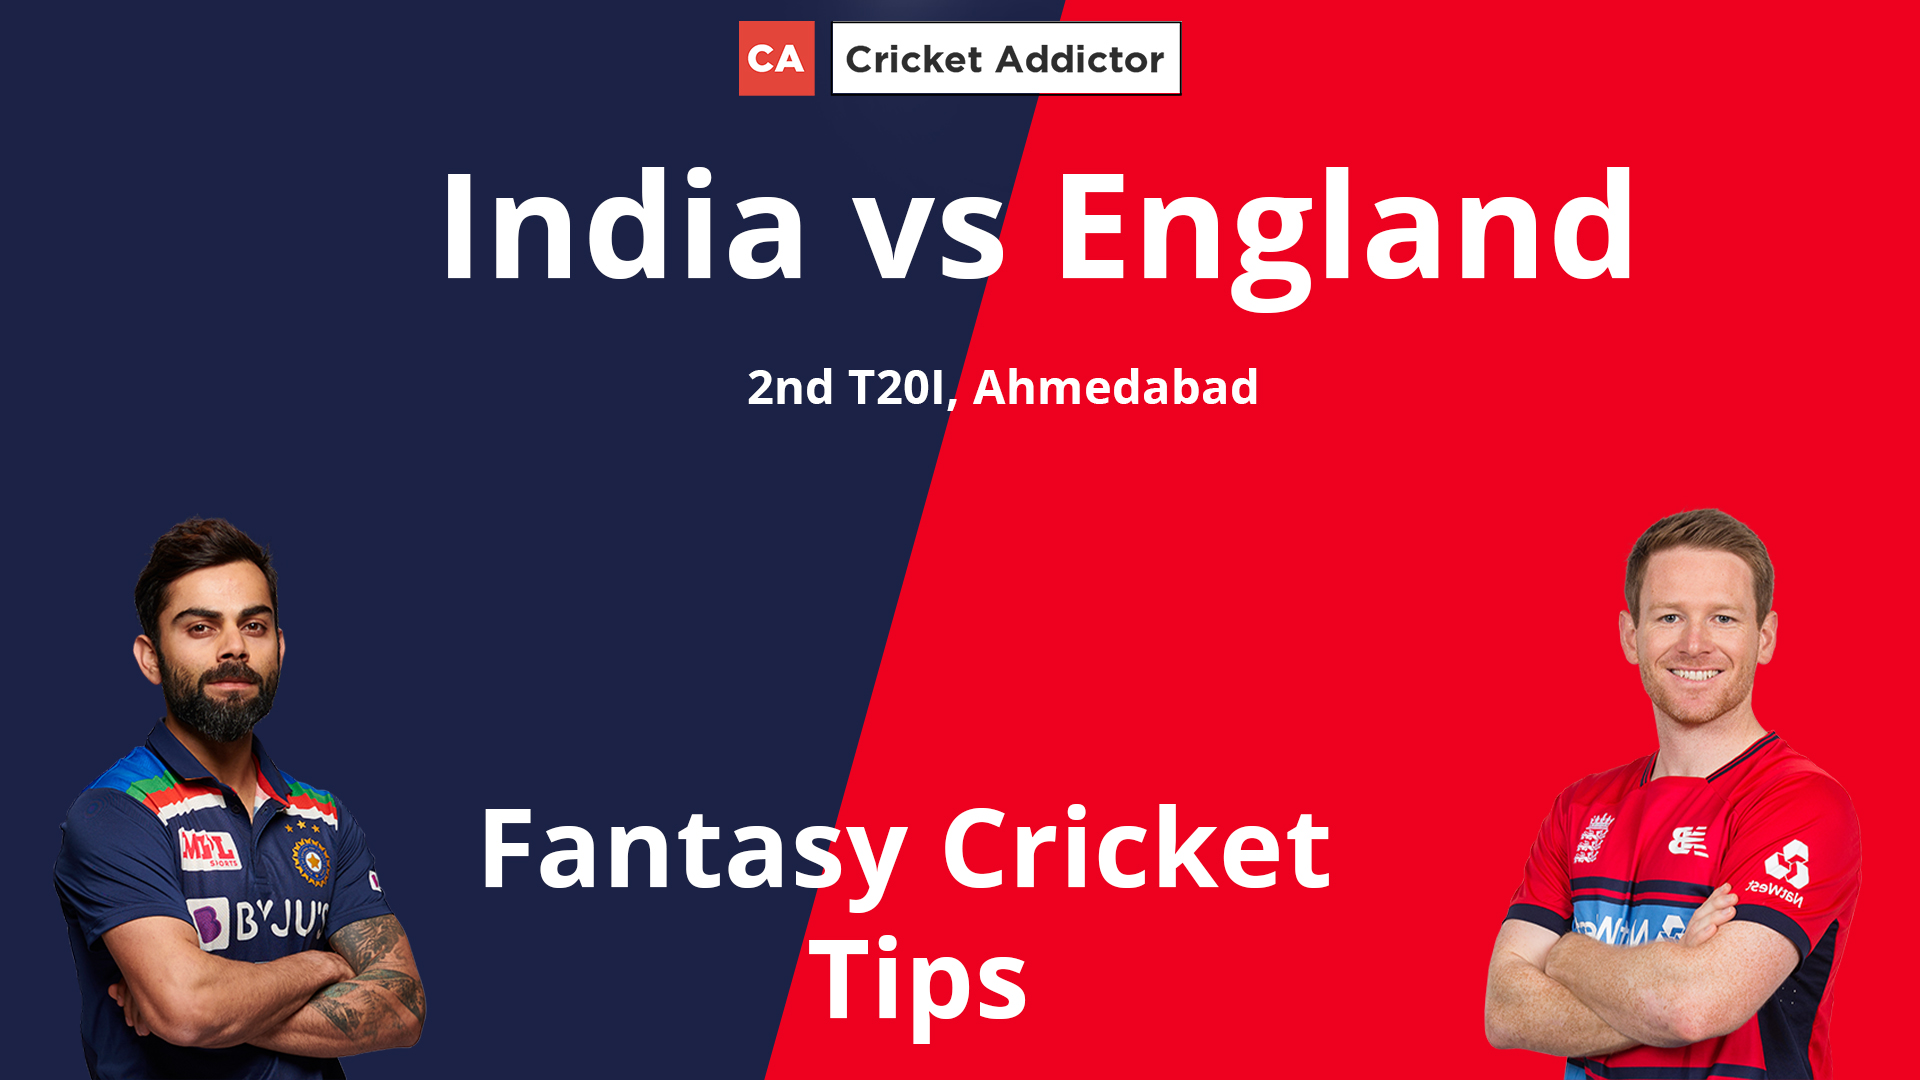 India vs England 2nd T20I Dream11 Prediction, Fantasy Cricket Tips, Playing XI, Pitch Report, Dream11 Team, and Injury Update.